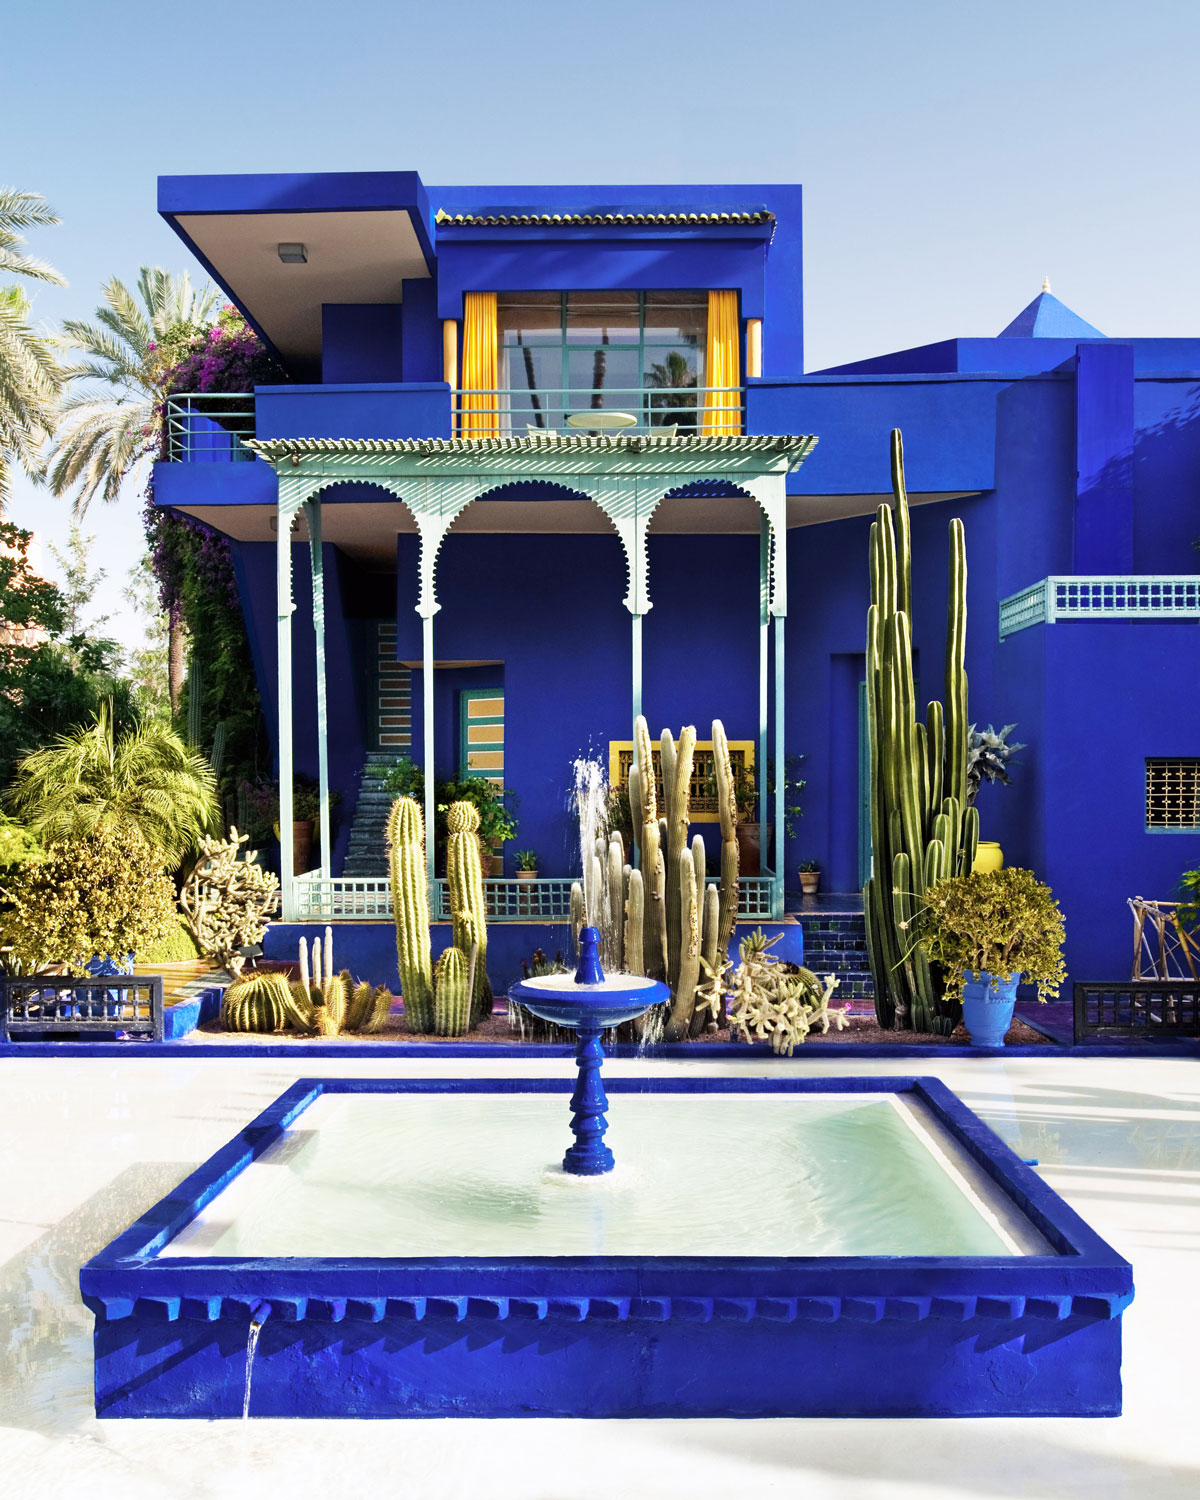 Marrakesh - While staying at a private riad exclusively for your group, explore Sarah Casewit's city of birth: the Red City. Discover the unique art of bartering and bargaining for goods in the markets, visit the secluded gardens of Majorelle and Jardin Secret. Learn to prepare Moroccan dishes at a private cooking class. Meet with a local artist in his atelier for an introduction to Moroccan contemporary art.